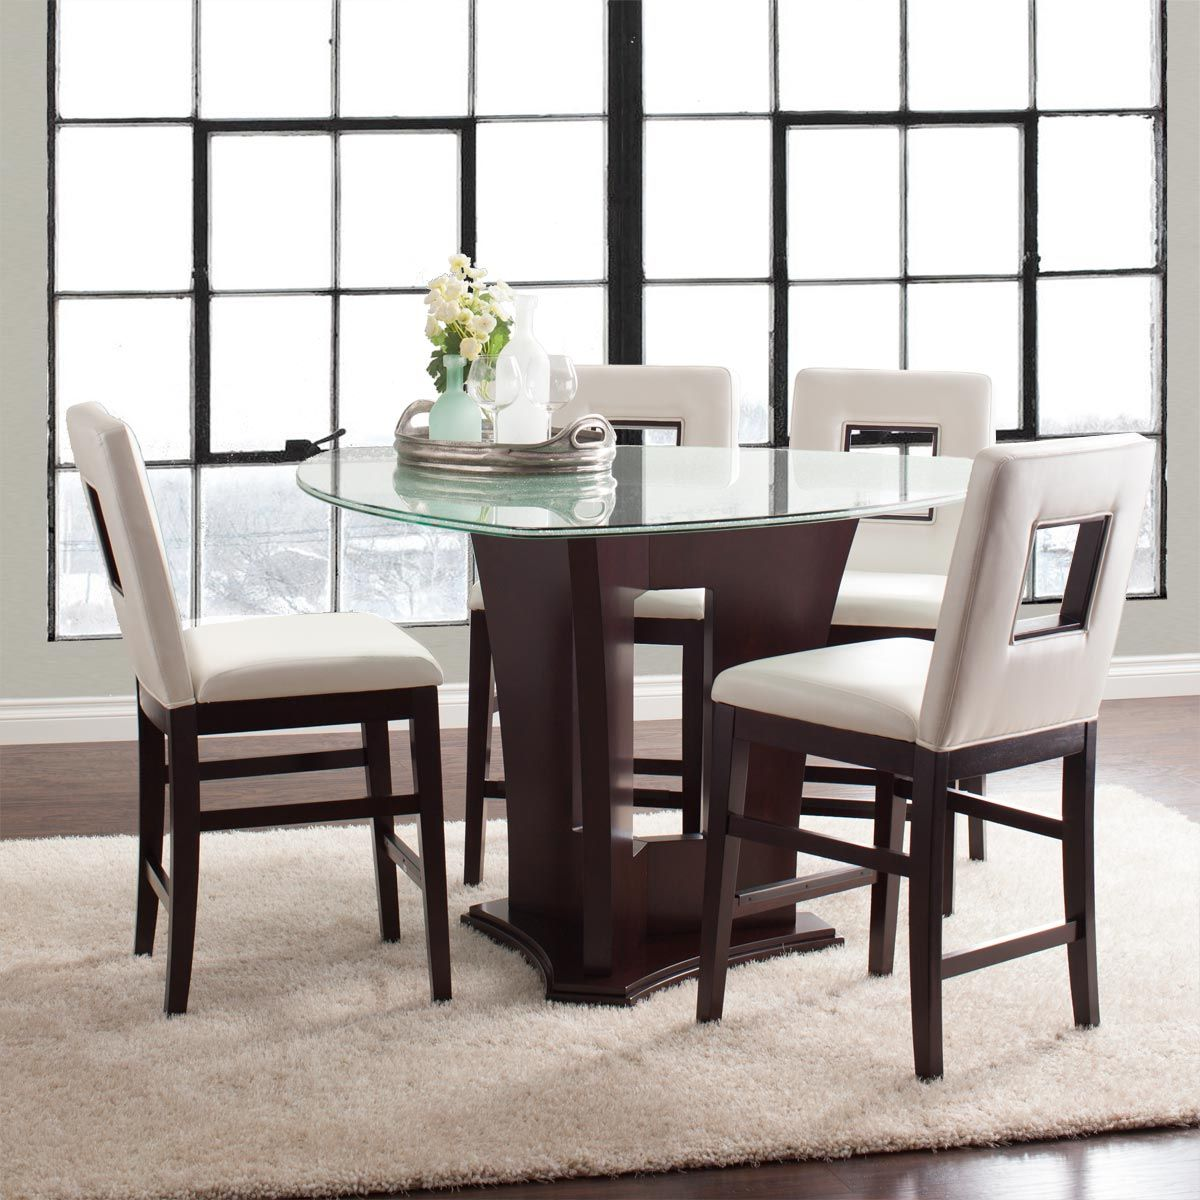 The Soho 5 Piece Glass Dining Set Offers Contemporary Style With A